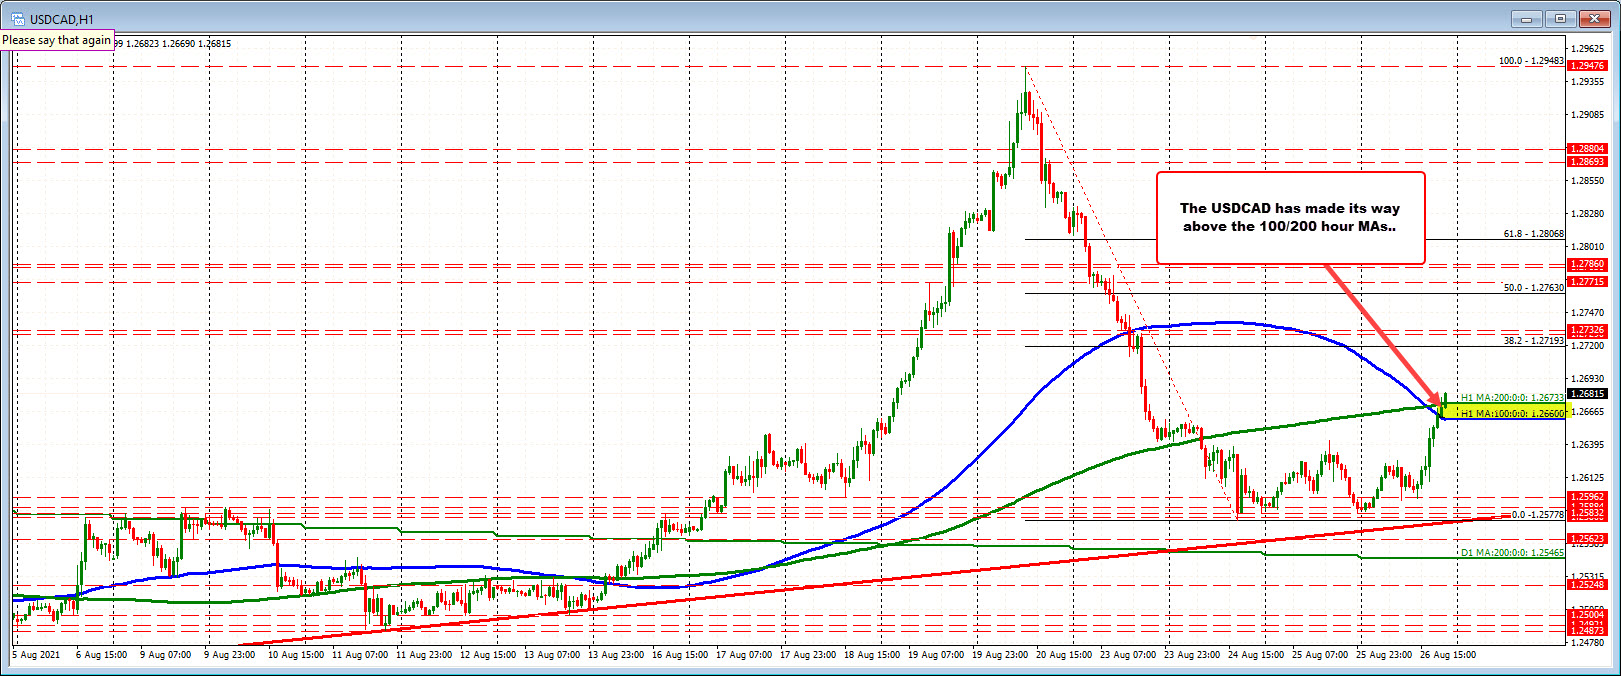 USDCAD moves above the 100/200 hour MAs